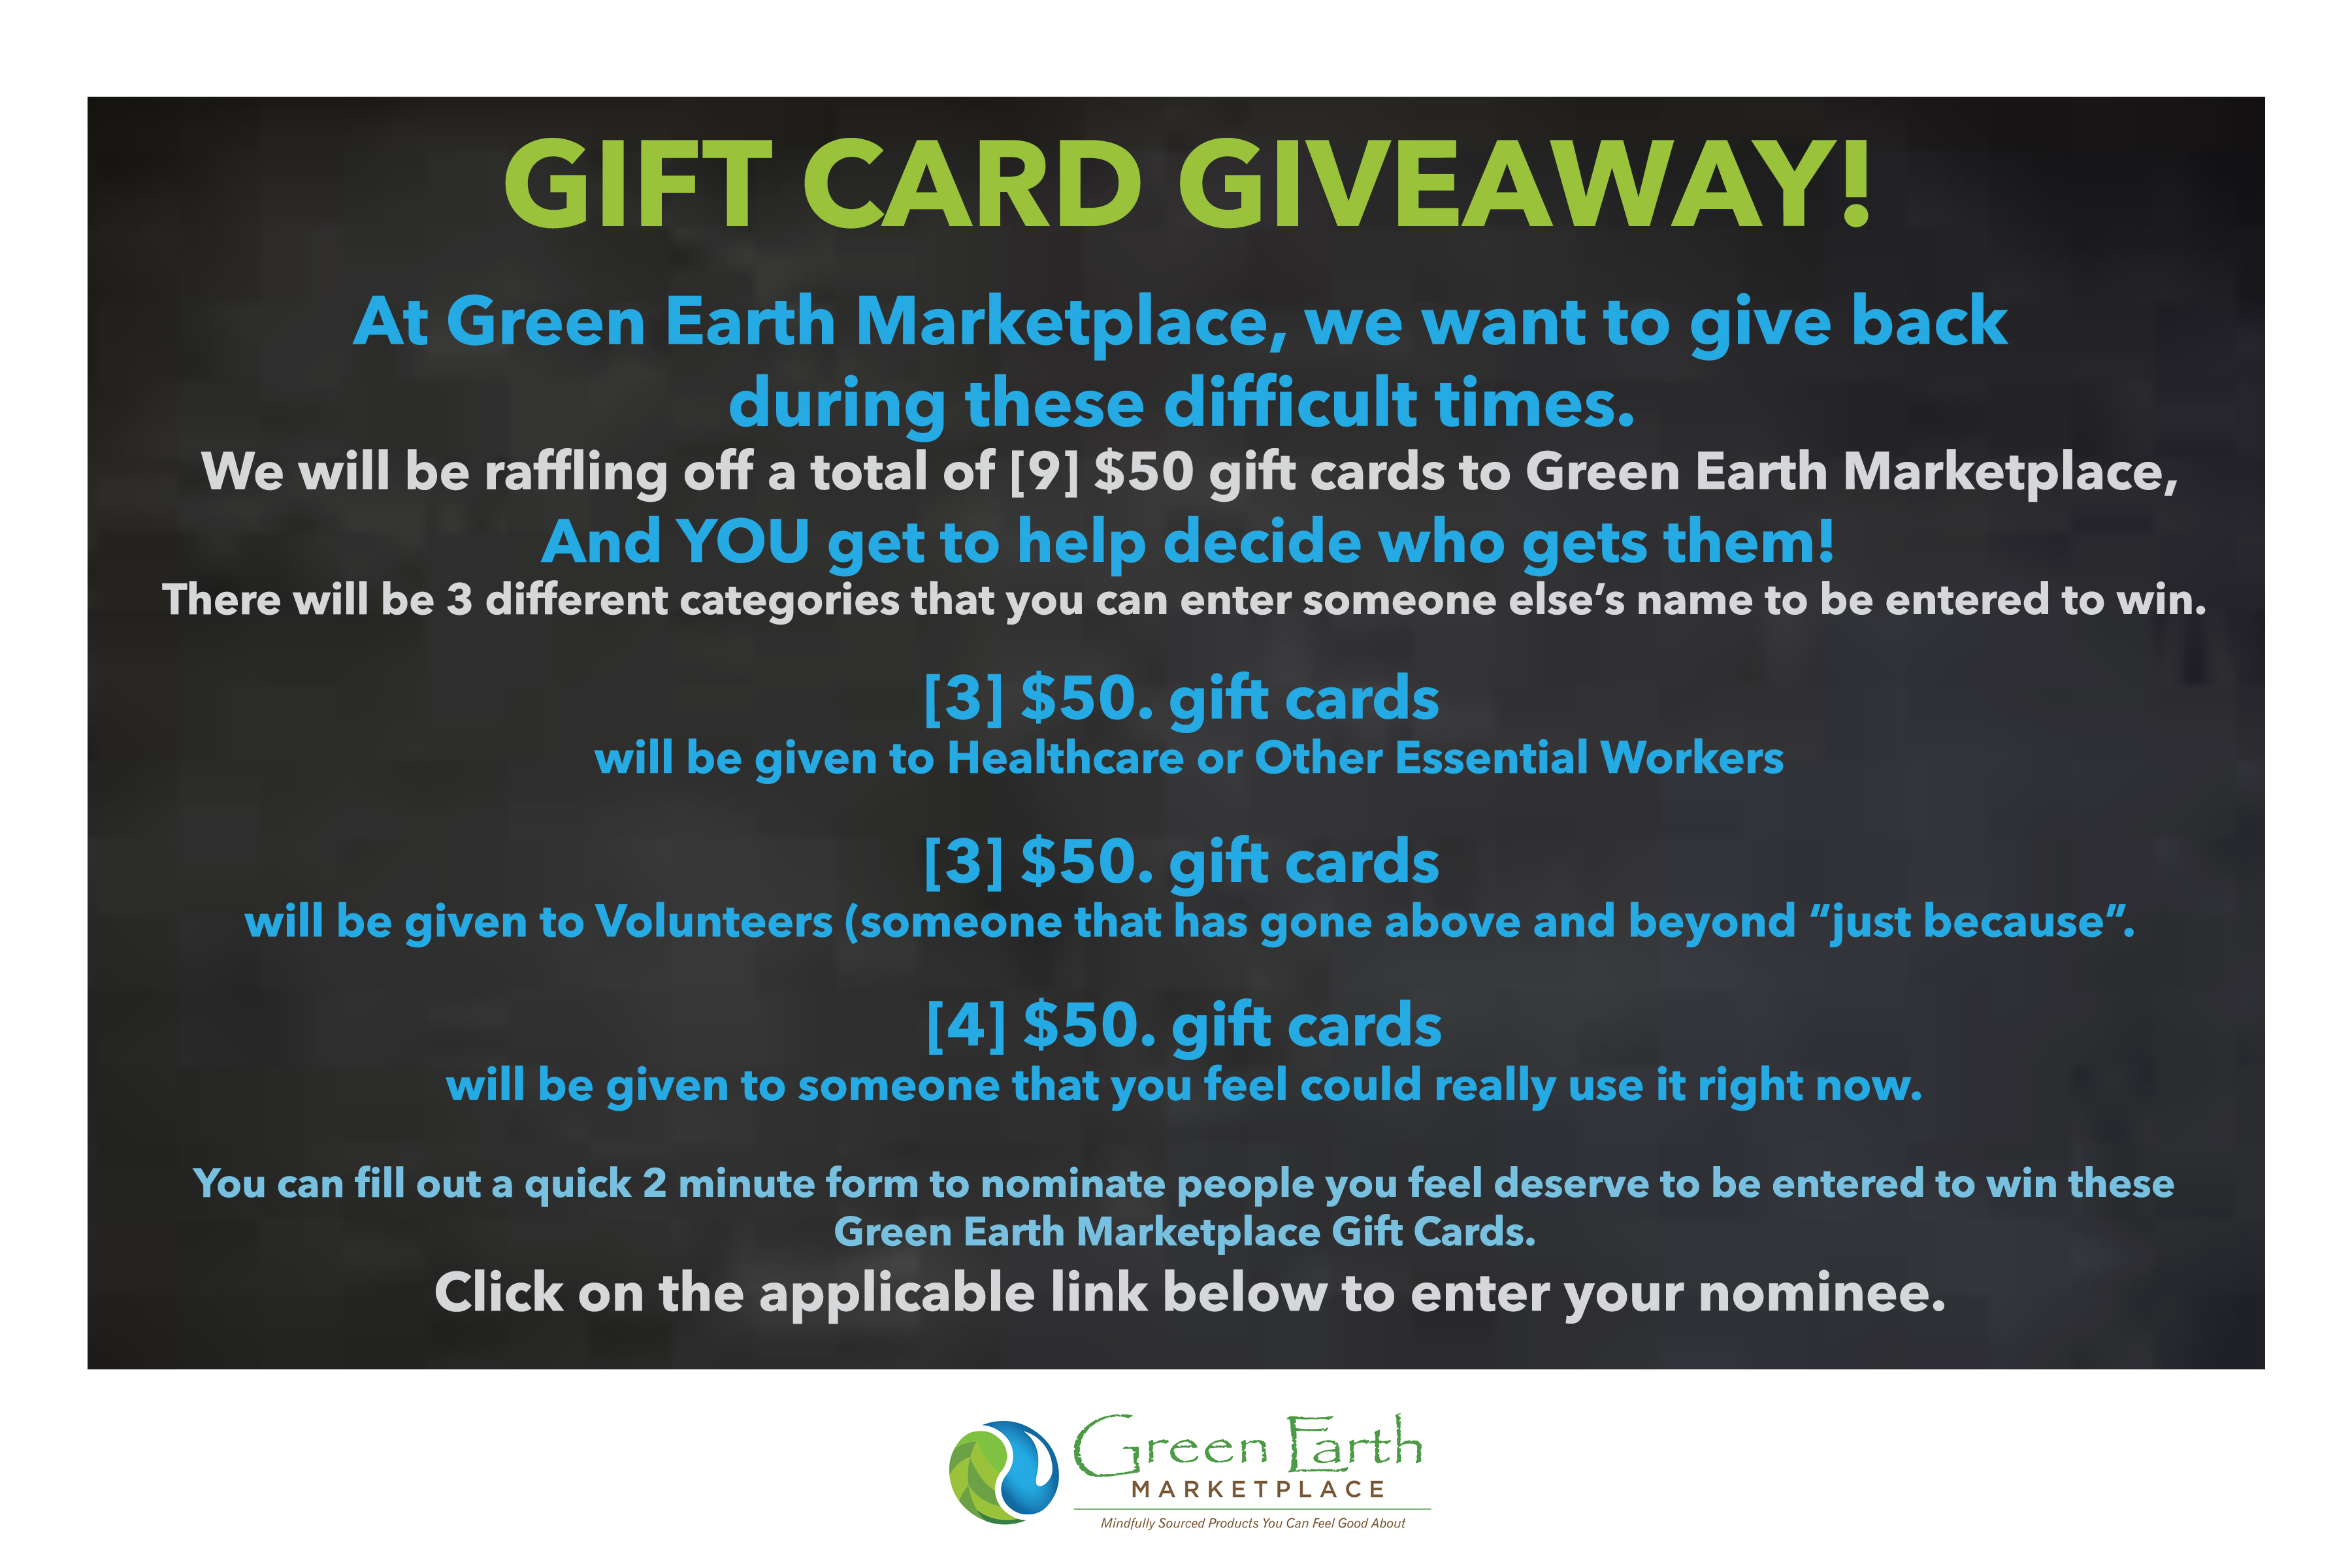 Gift Card Giveaway for website